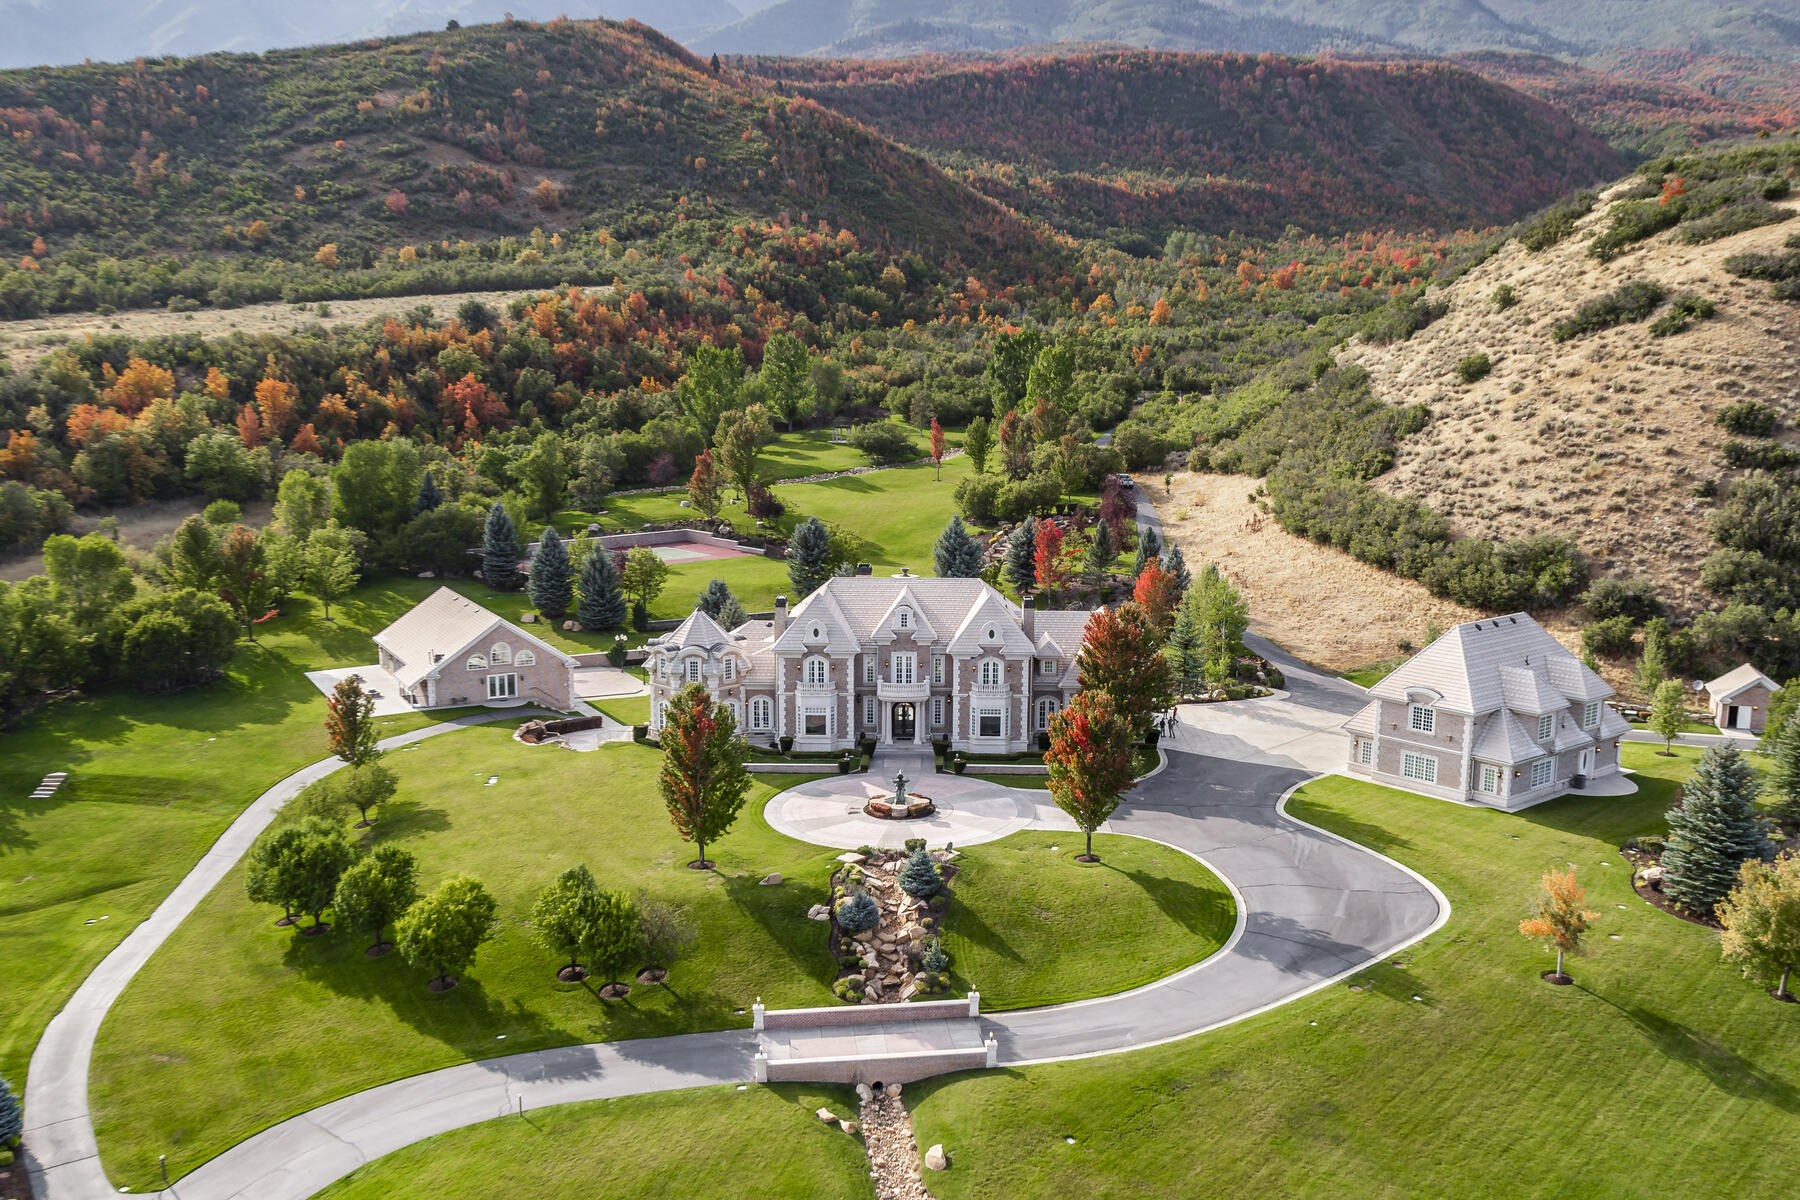 Property for Sale at Hobble Creek Ranch—Luxury Estate on 3,387 Acres 533 N Left Fork Hobble Creek Cyn Springville, Utah 84663 United States